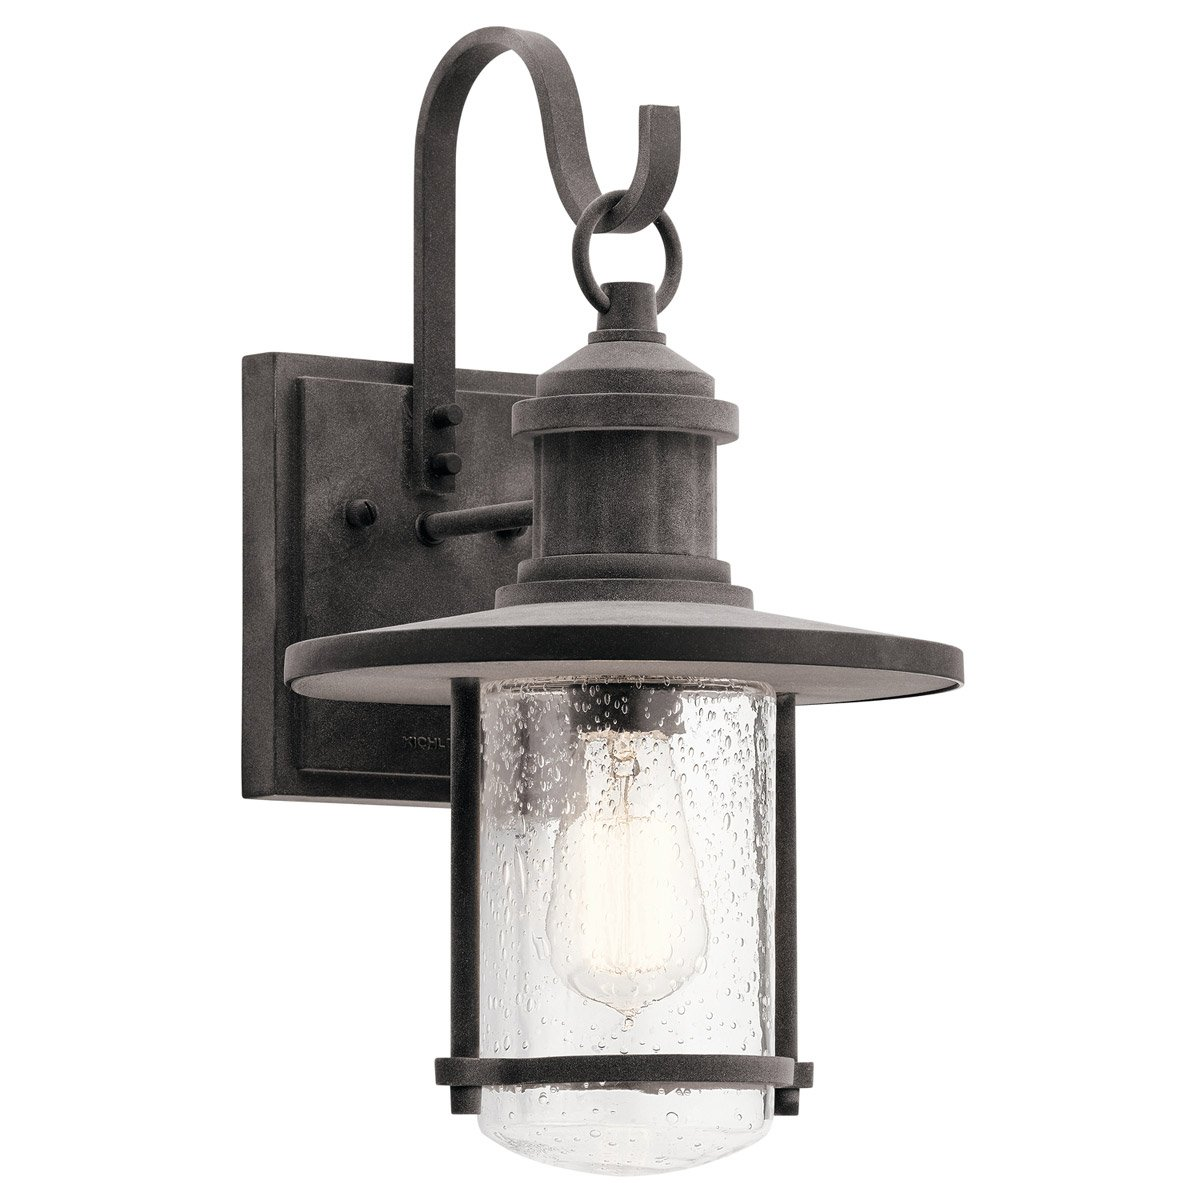 Kichler 49193WZC Riverwood 16.75'' Outdoor Wall Sconce in Weathered Zinc